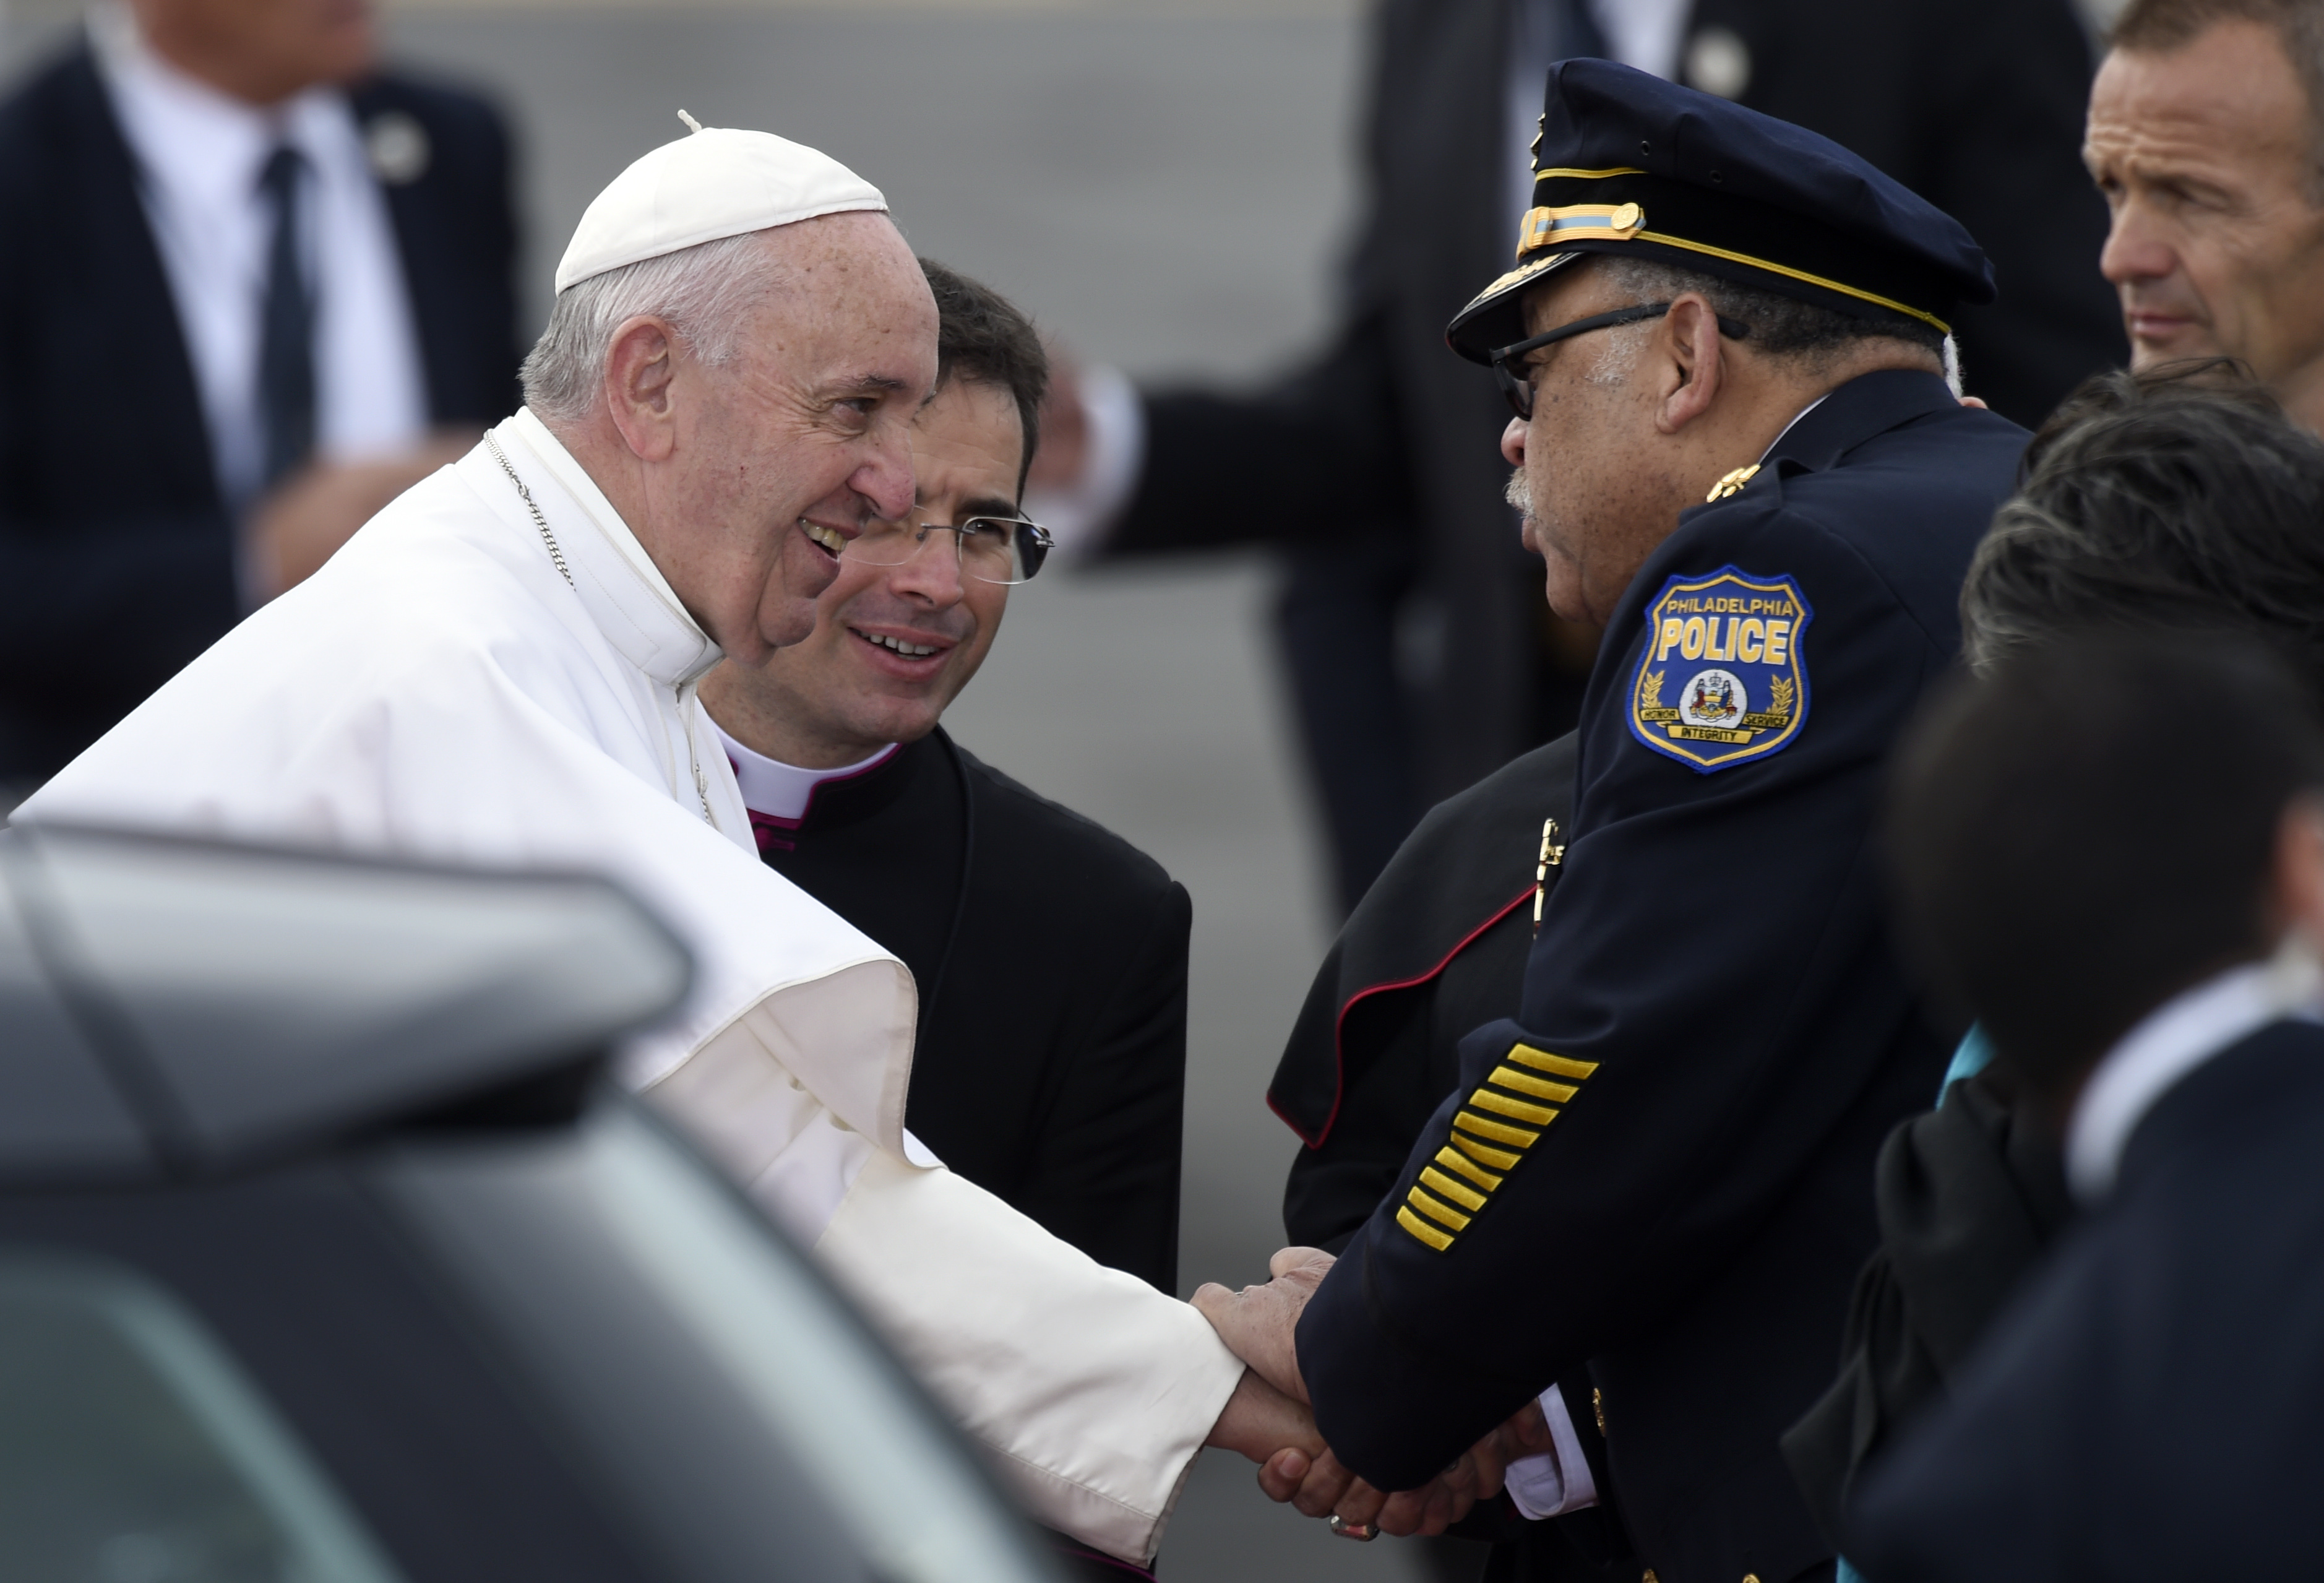 Photos: Pope Francis in Philly